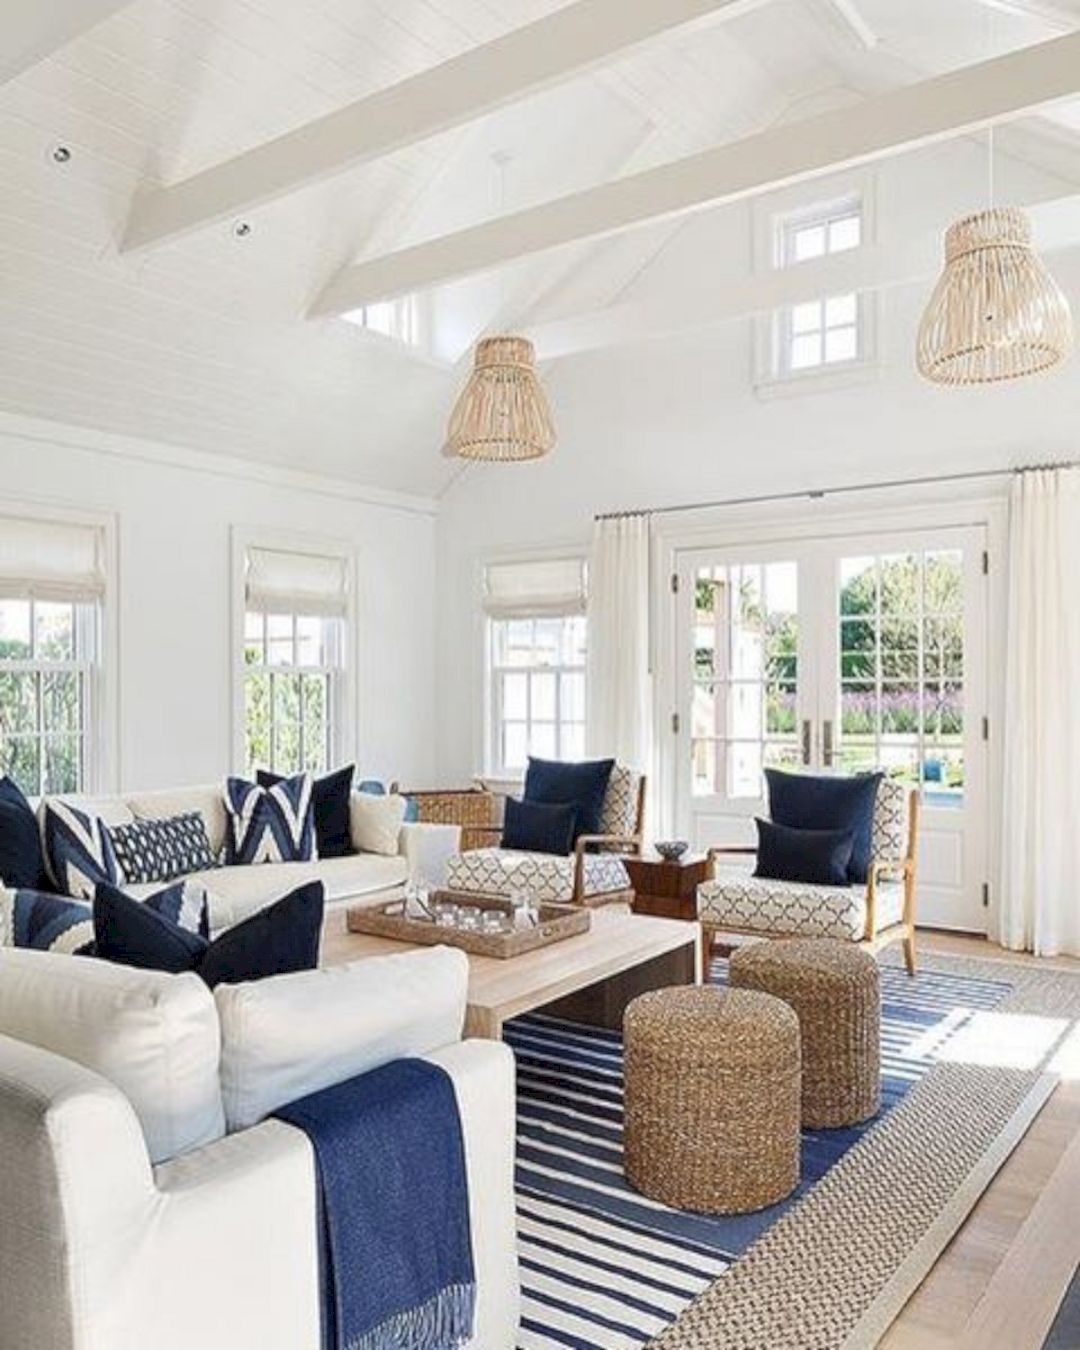 15 Decorating Ideas For A Chic Family Room Coastal Decorating Living Room Coastal Living Rooms Rugs In Living Room